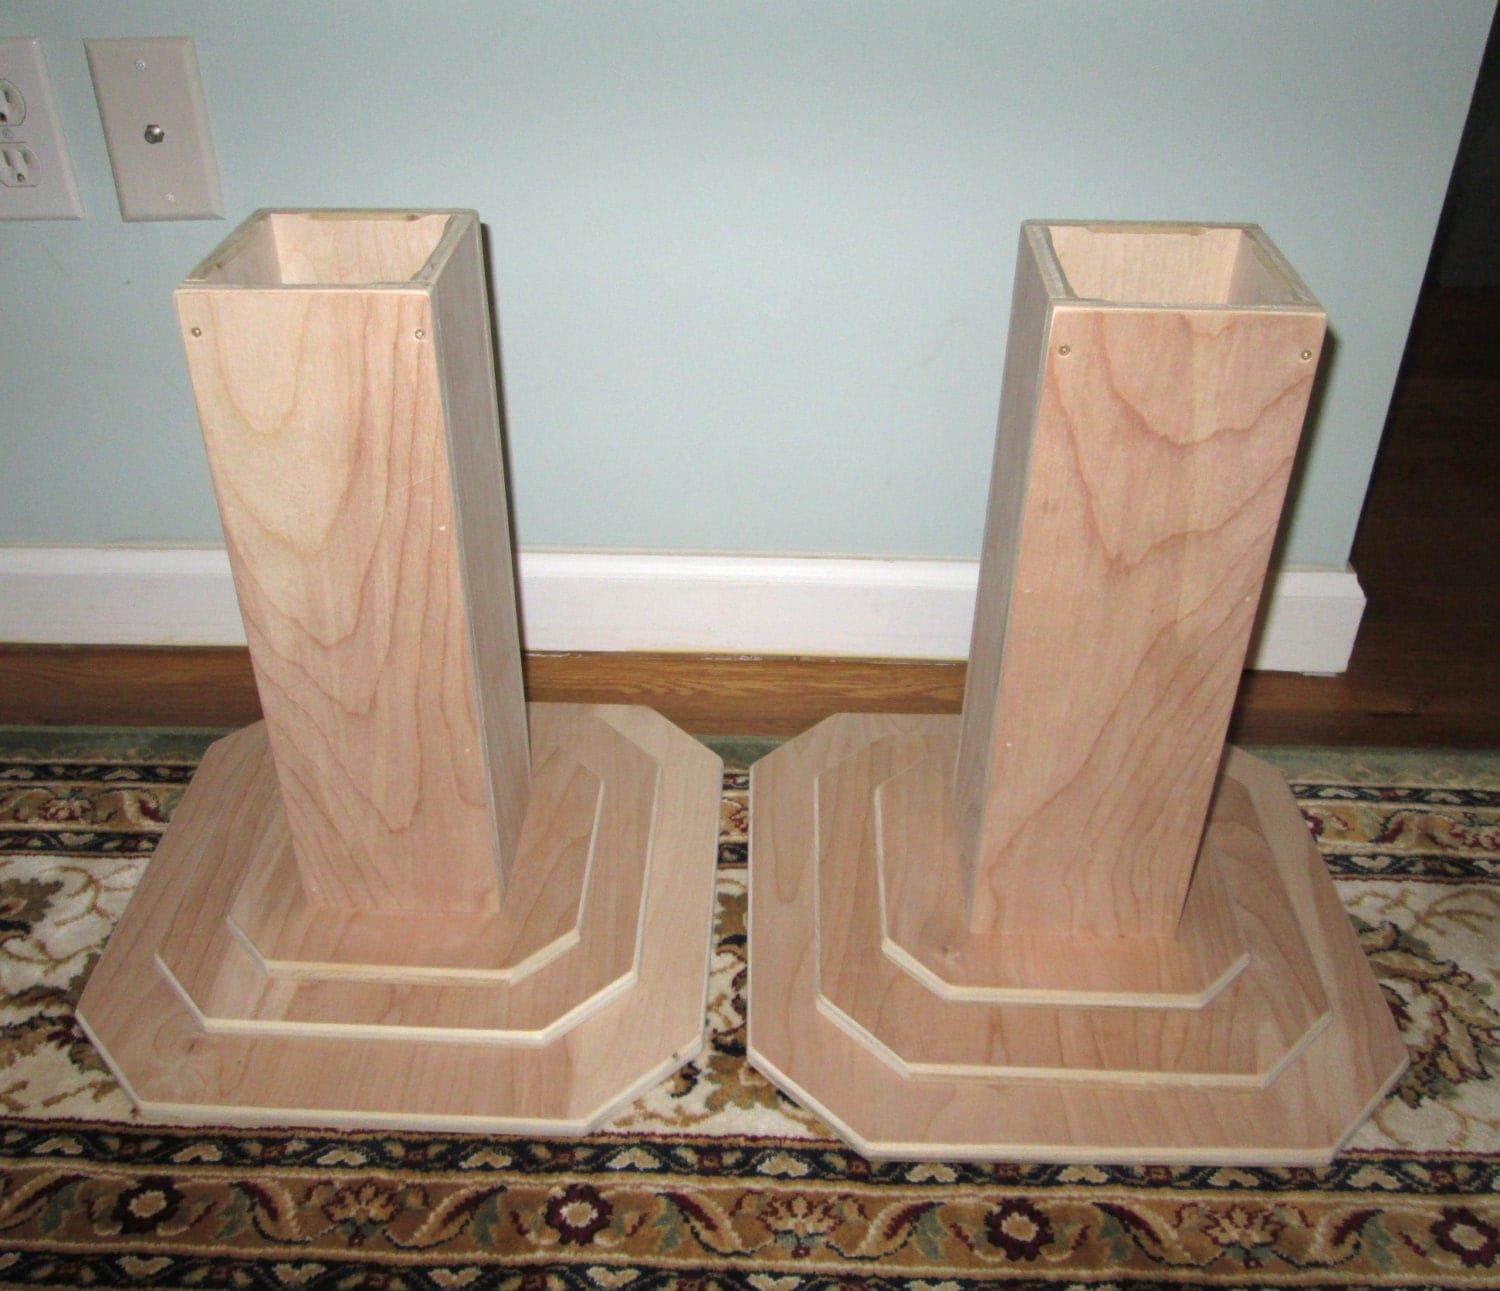 Furniture risers 14 inch all wood construction unfinished for Furniture risers